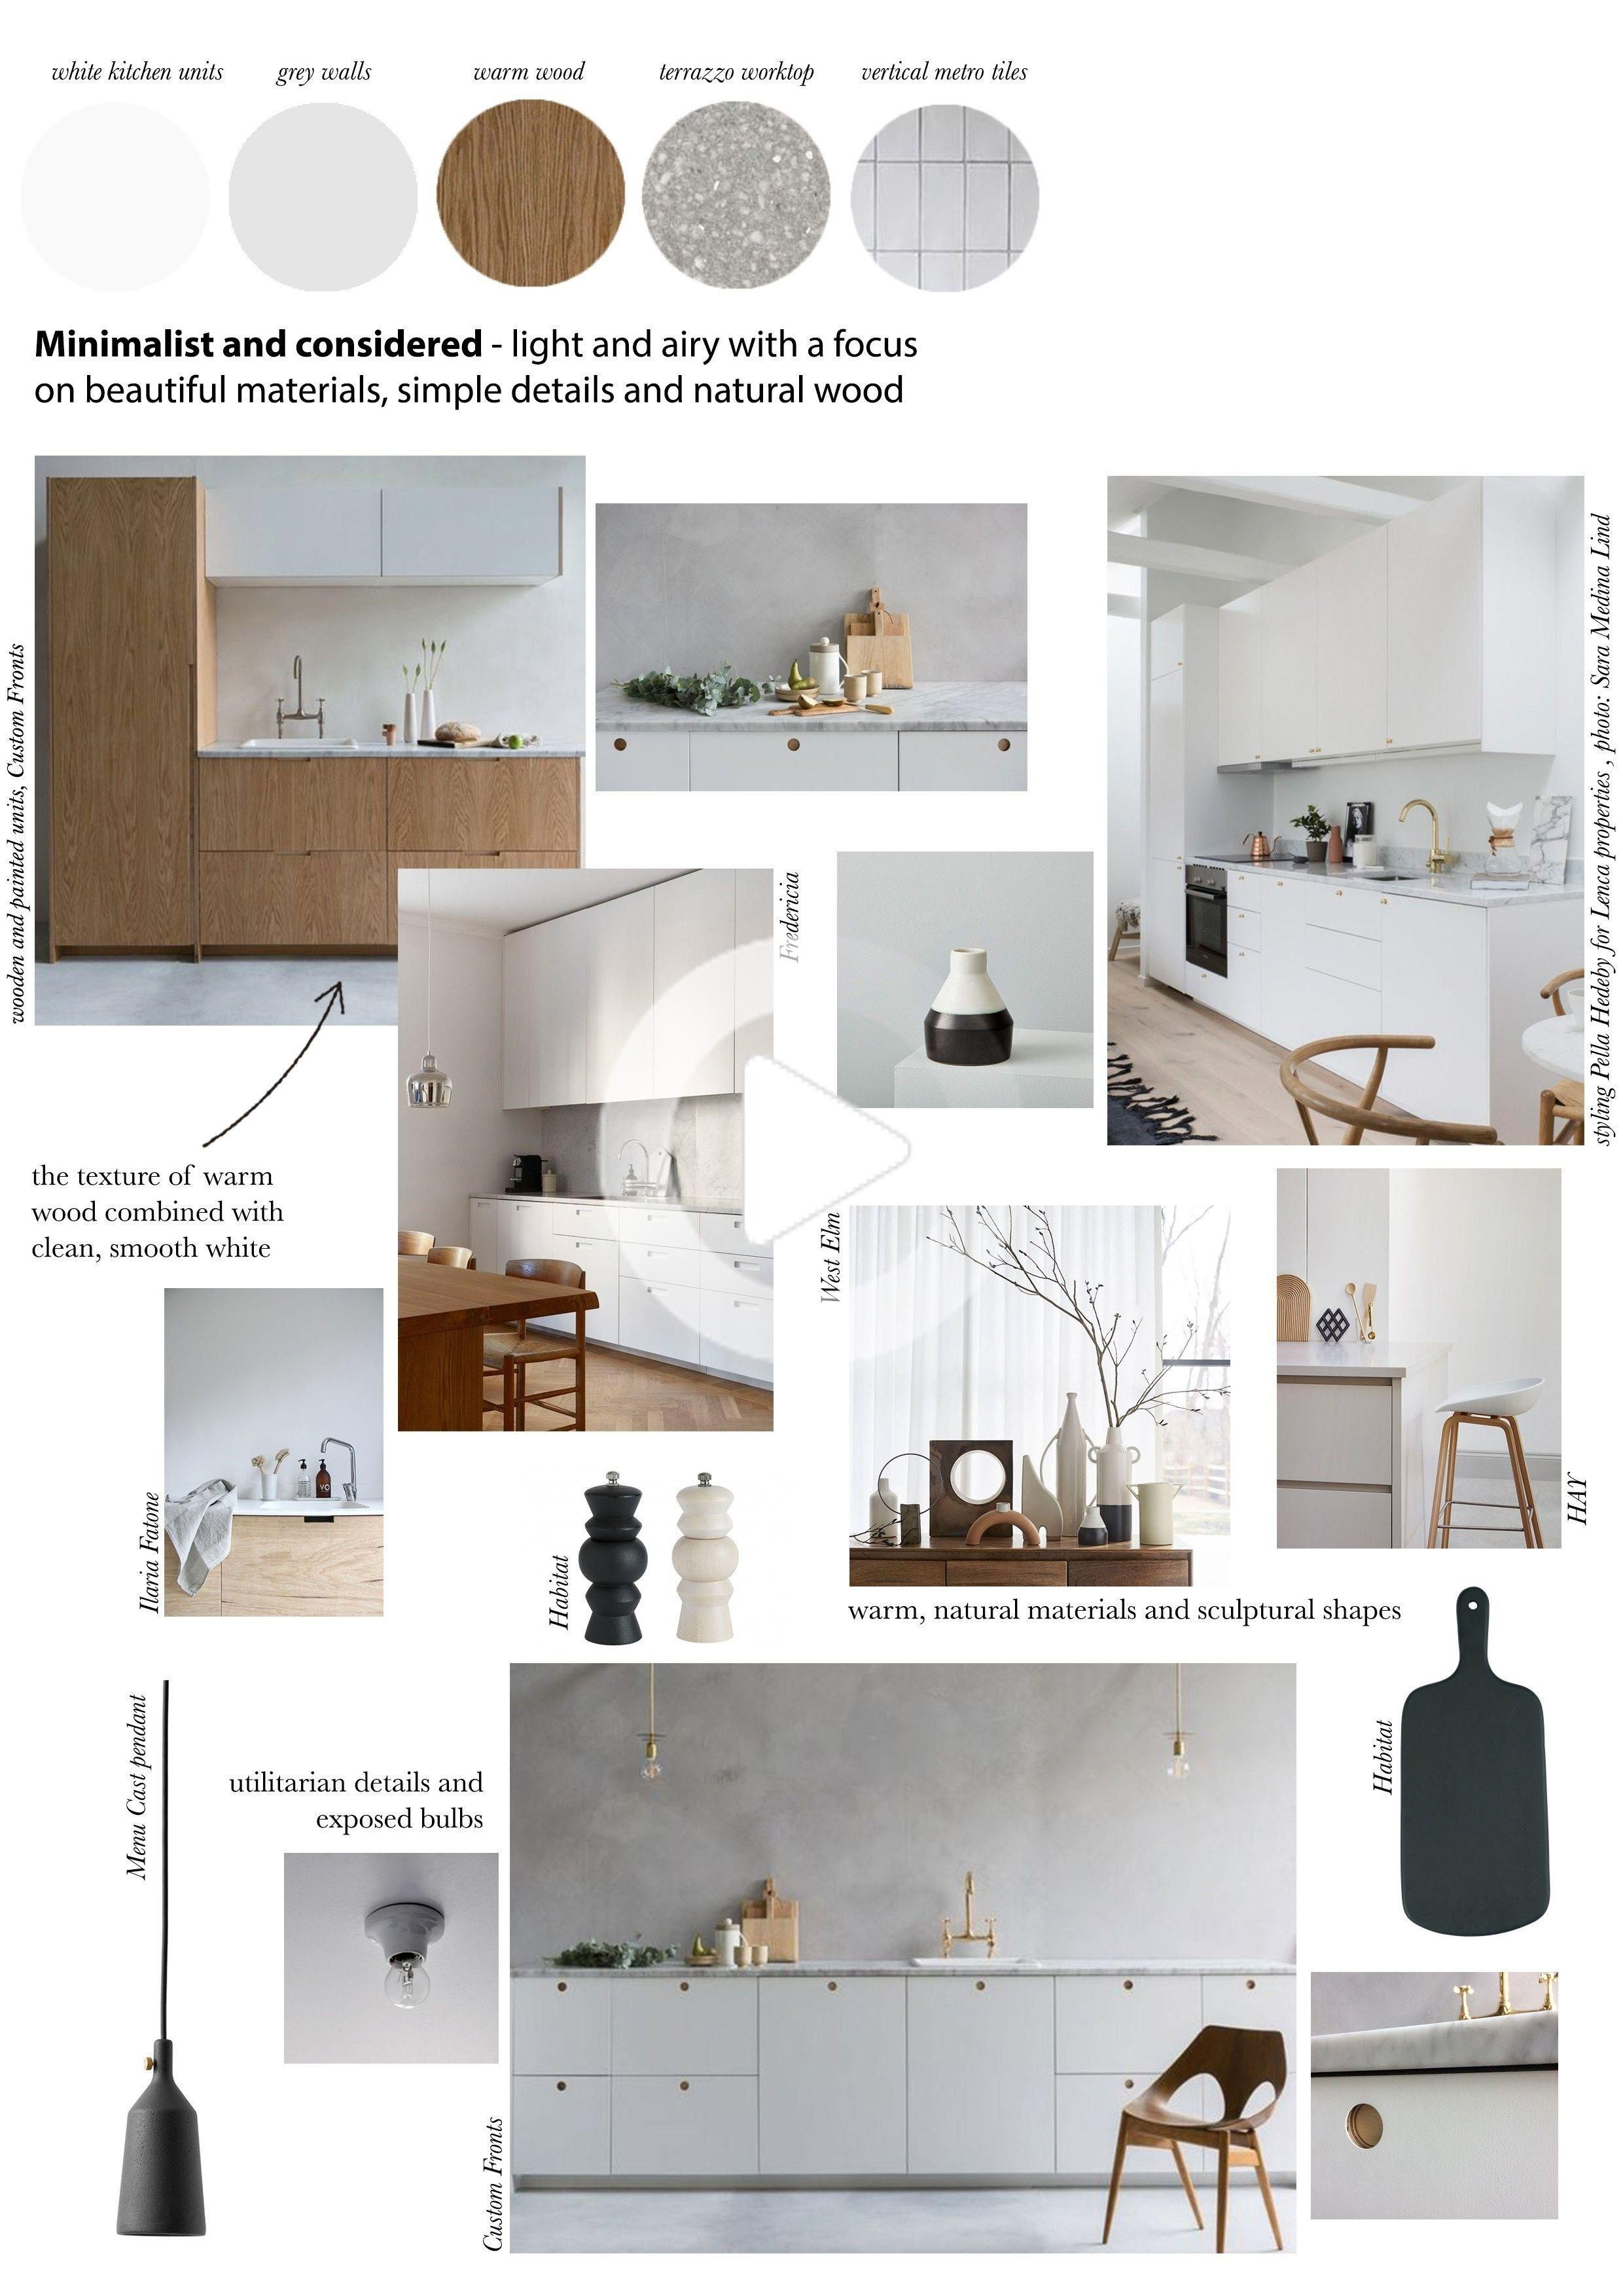 A compact maisonette in south London is transformed into a light-filled, minimalist kitchen and open-plan living space with monochrome touches #kitcheninspiration